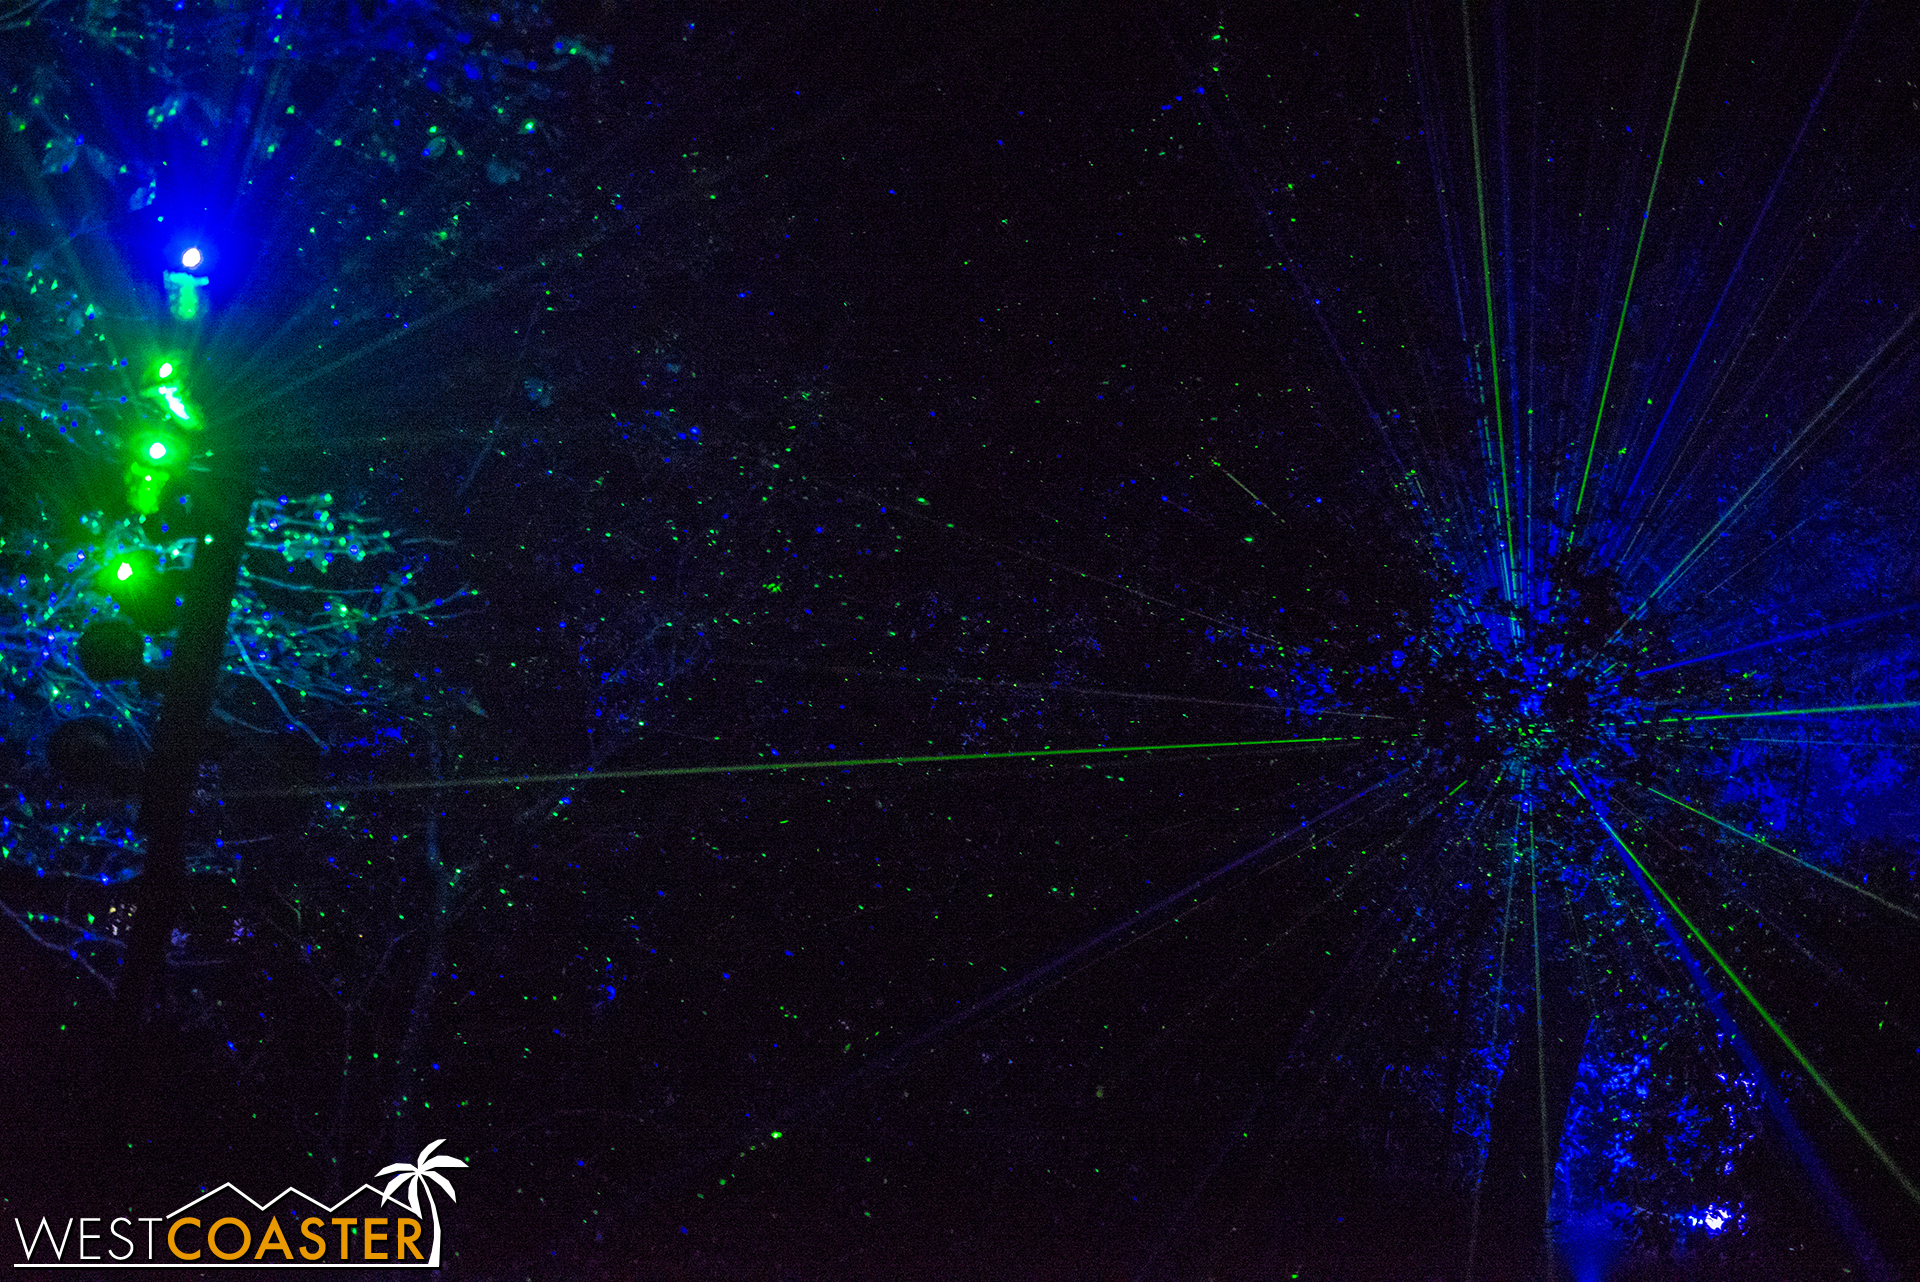 A laser firefly field cast onto the trees creates a green, starry canopy.